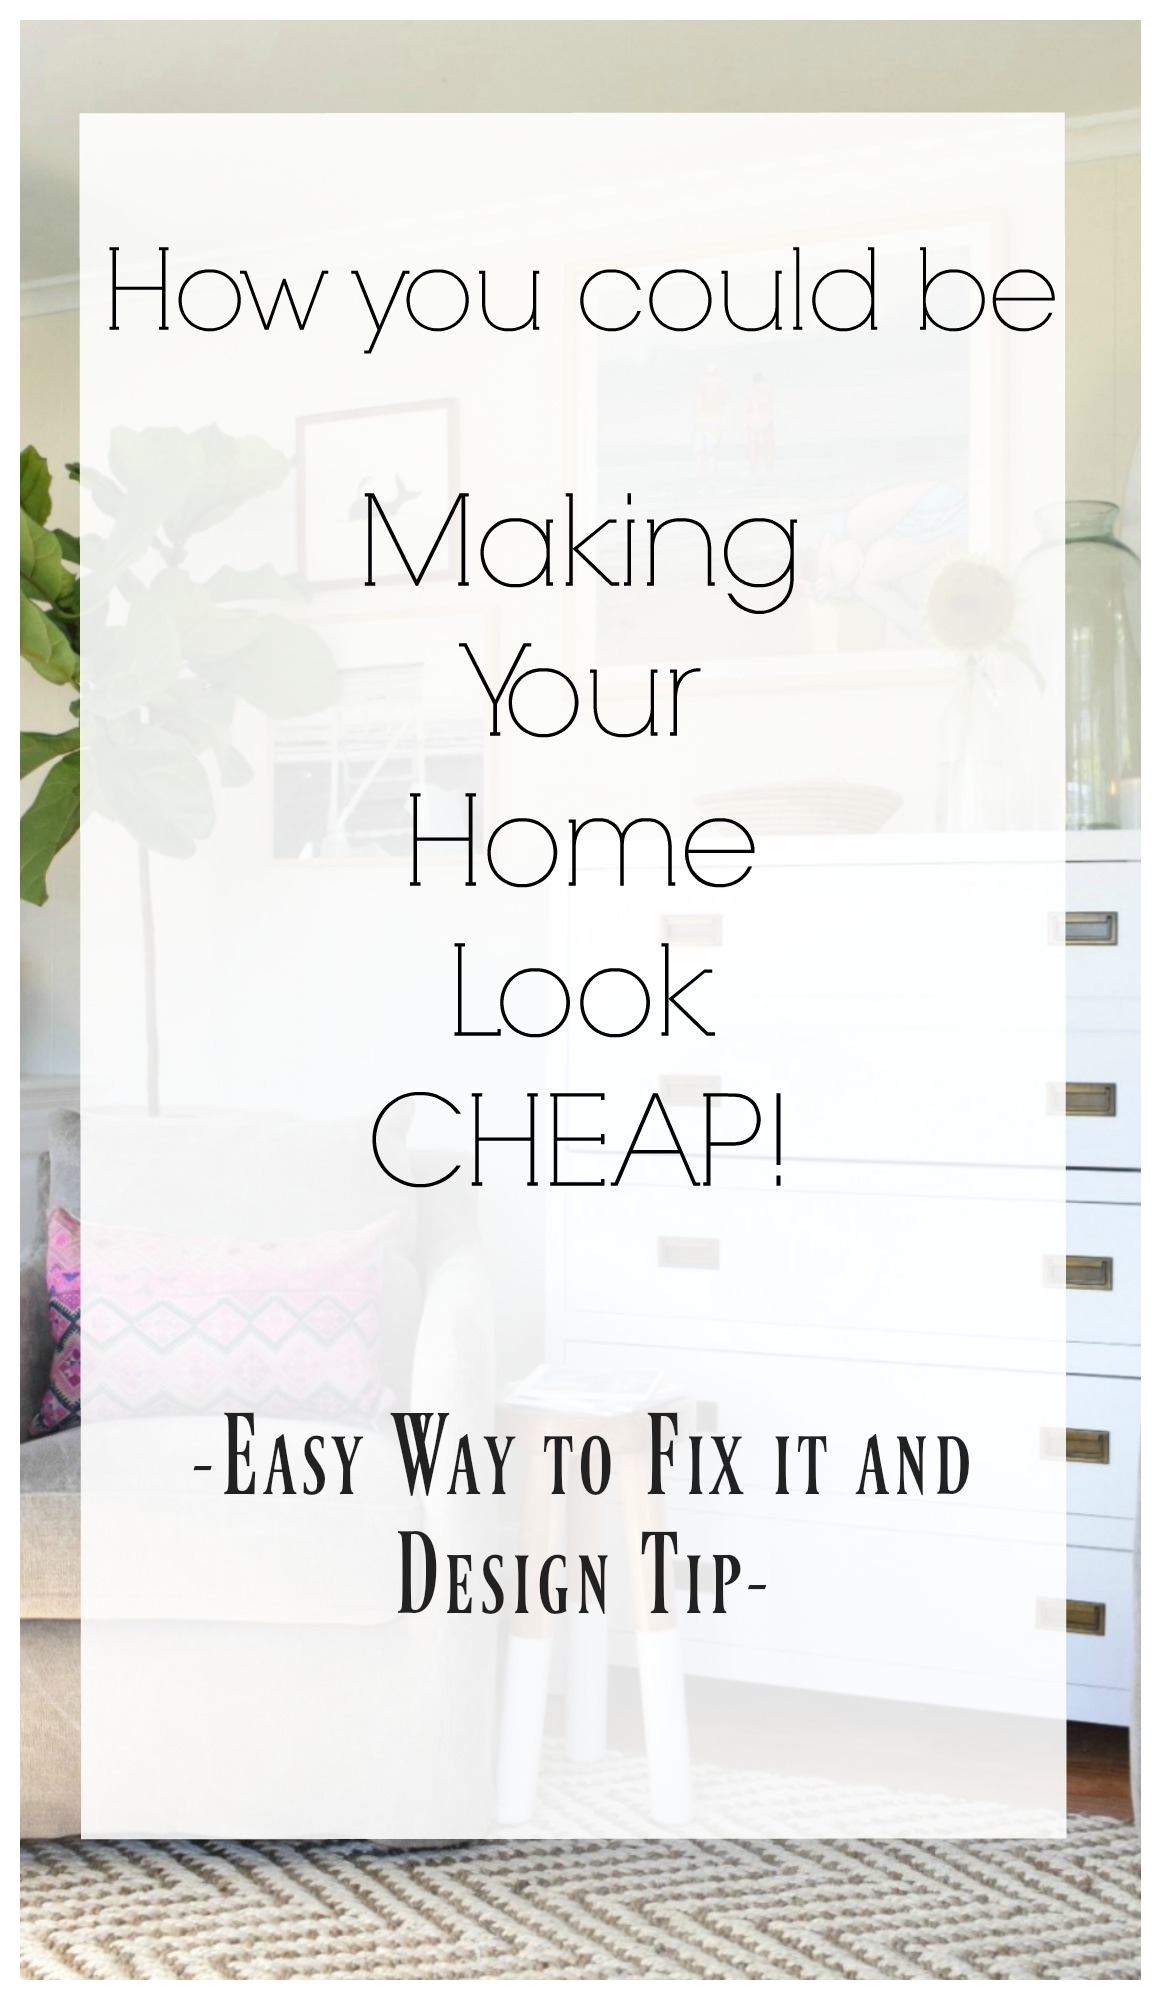 How you could be Making your Home look Cheap!